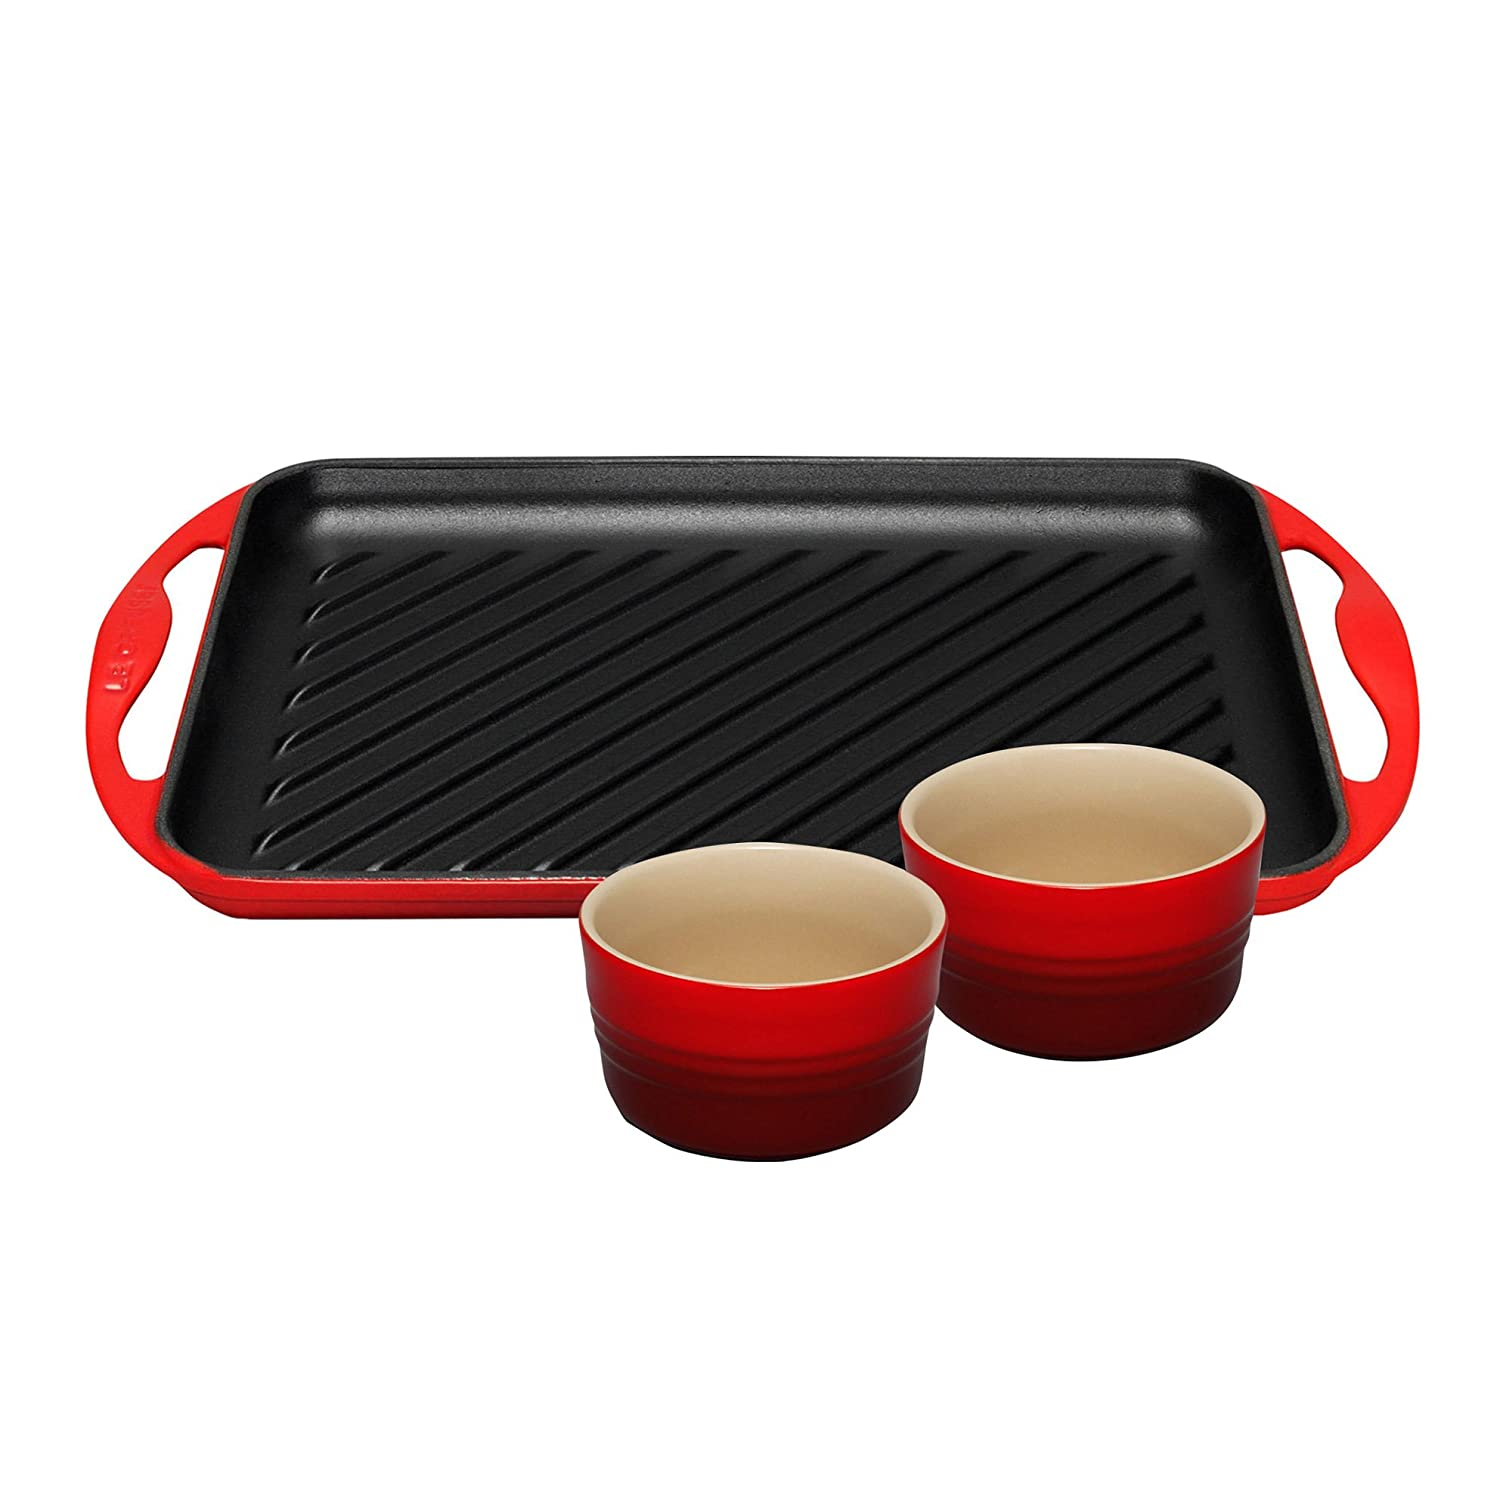 Le Creuset Cast Iron Rectangular Grill and Set of 2 Ramekins - Cerise